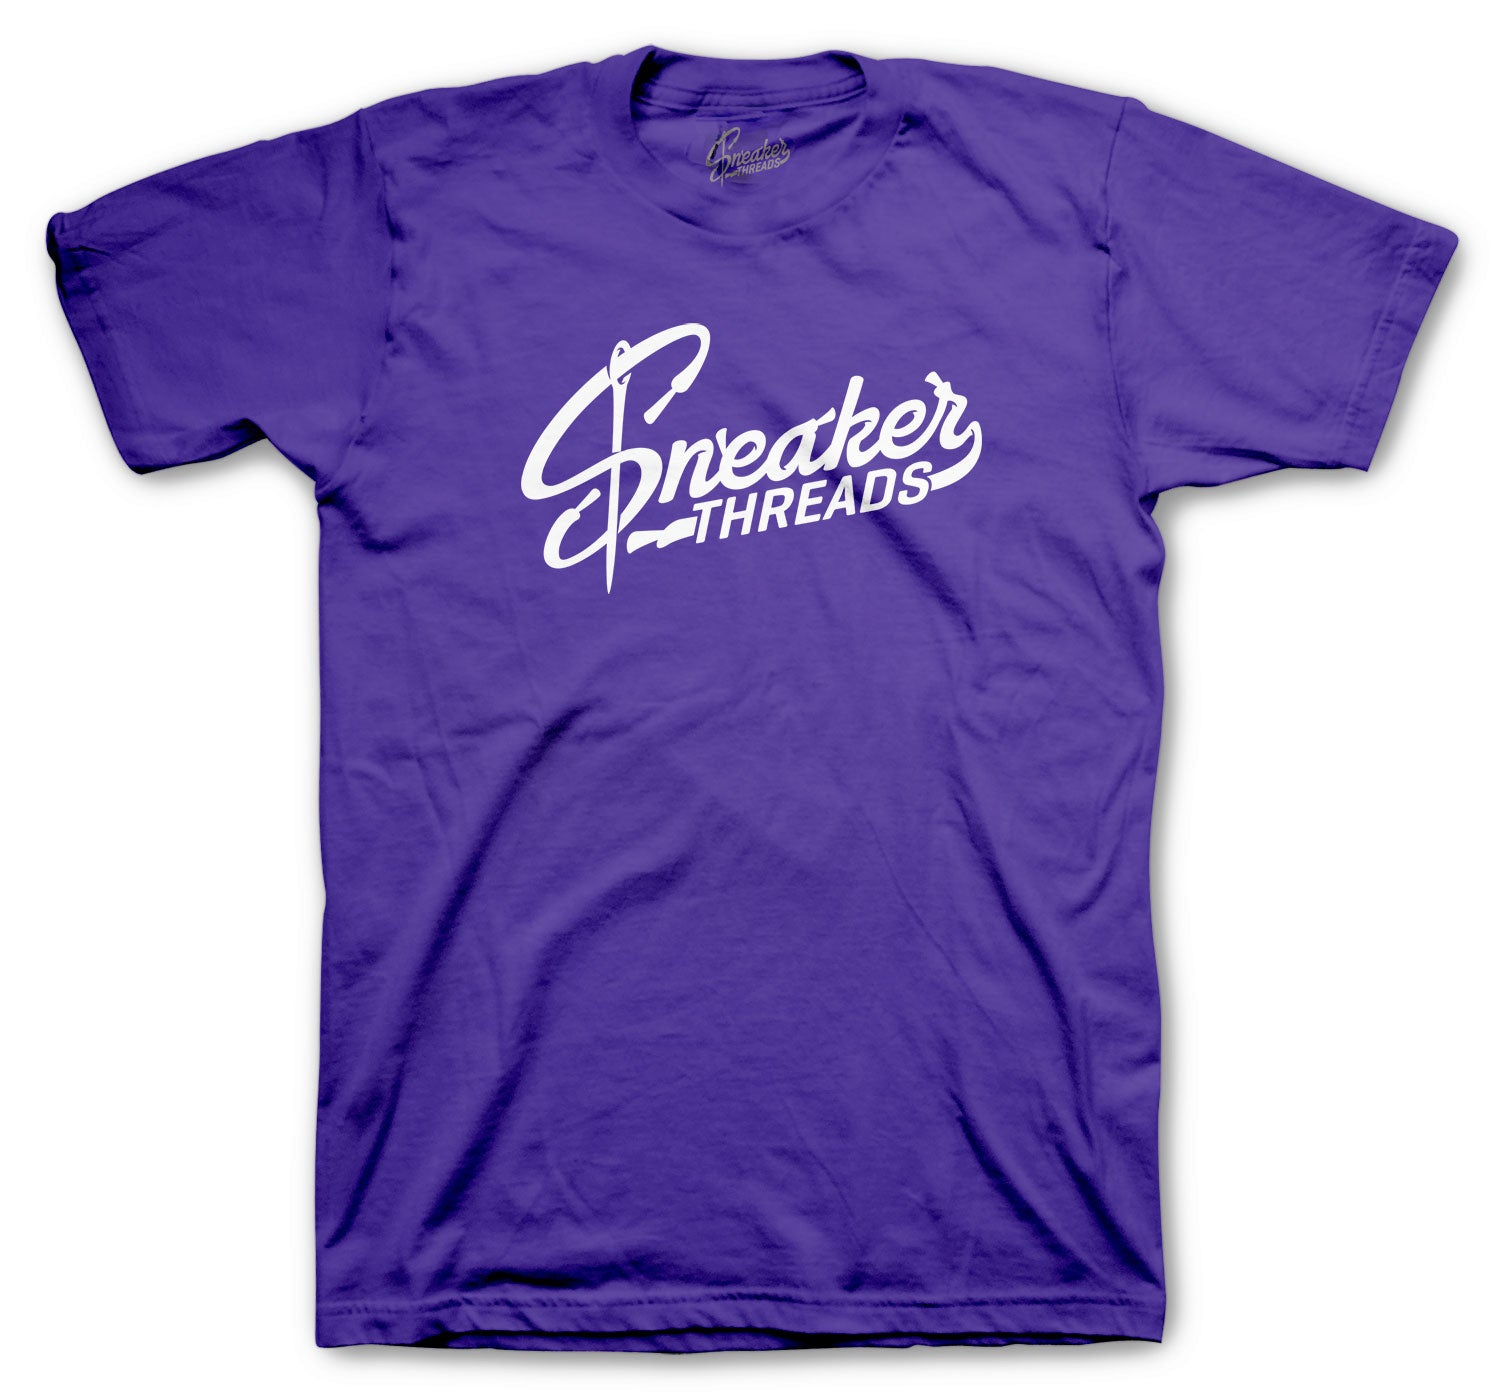 Shirt collection matching with Jordan 4 metallic purple sneaker collection